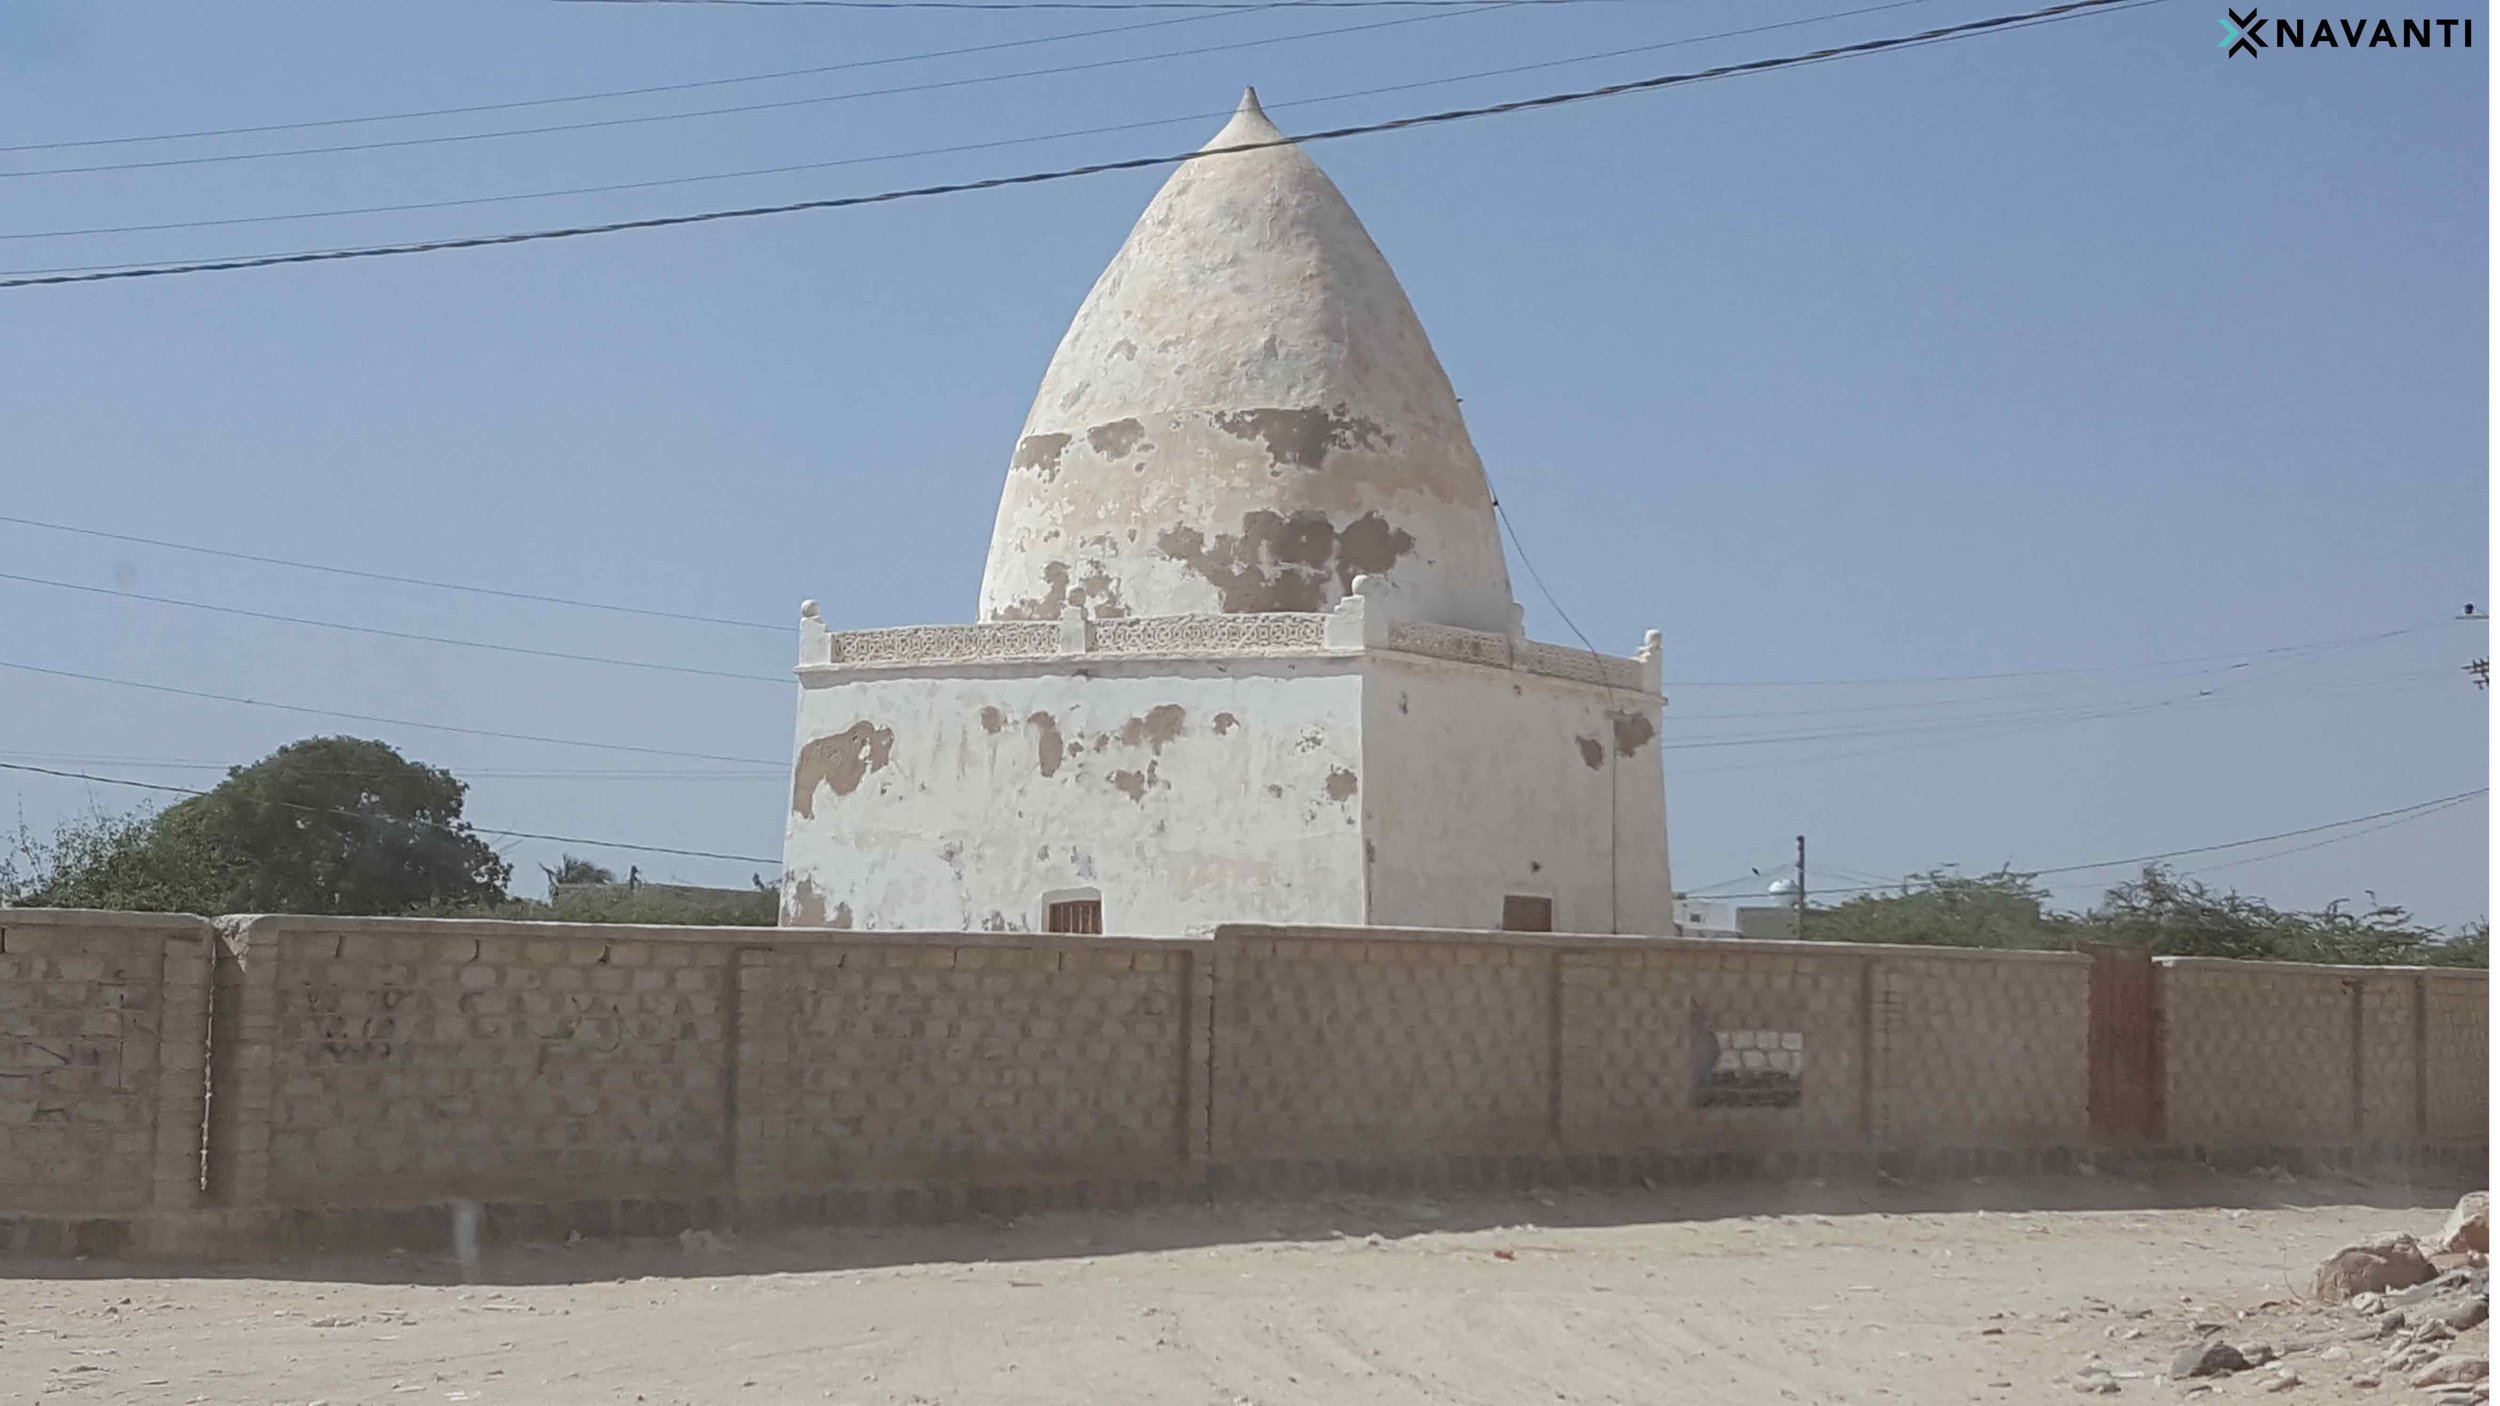 Sufi shrine in Sayhut, al-Mahra. Source: Navanti